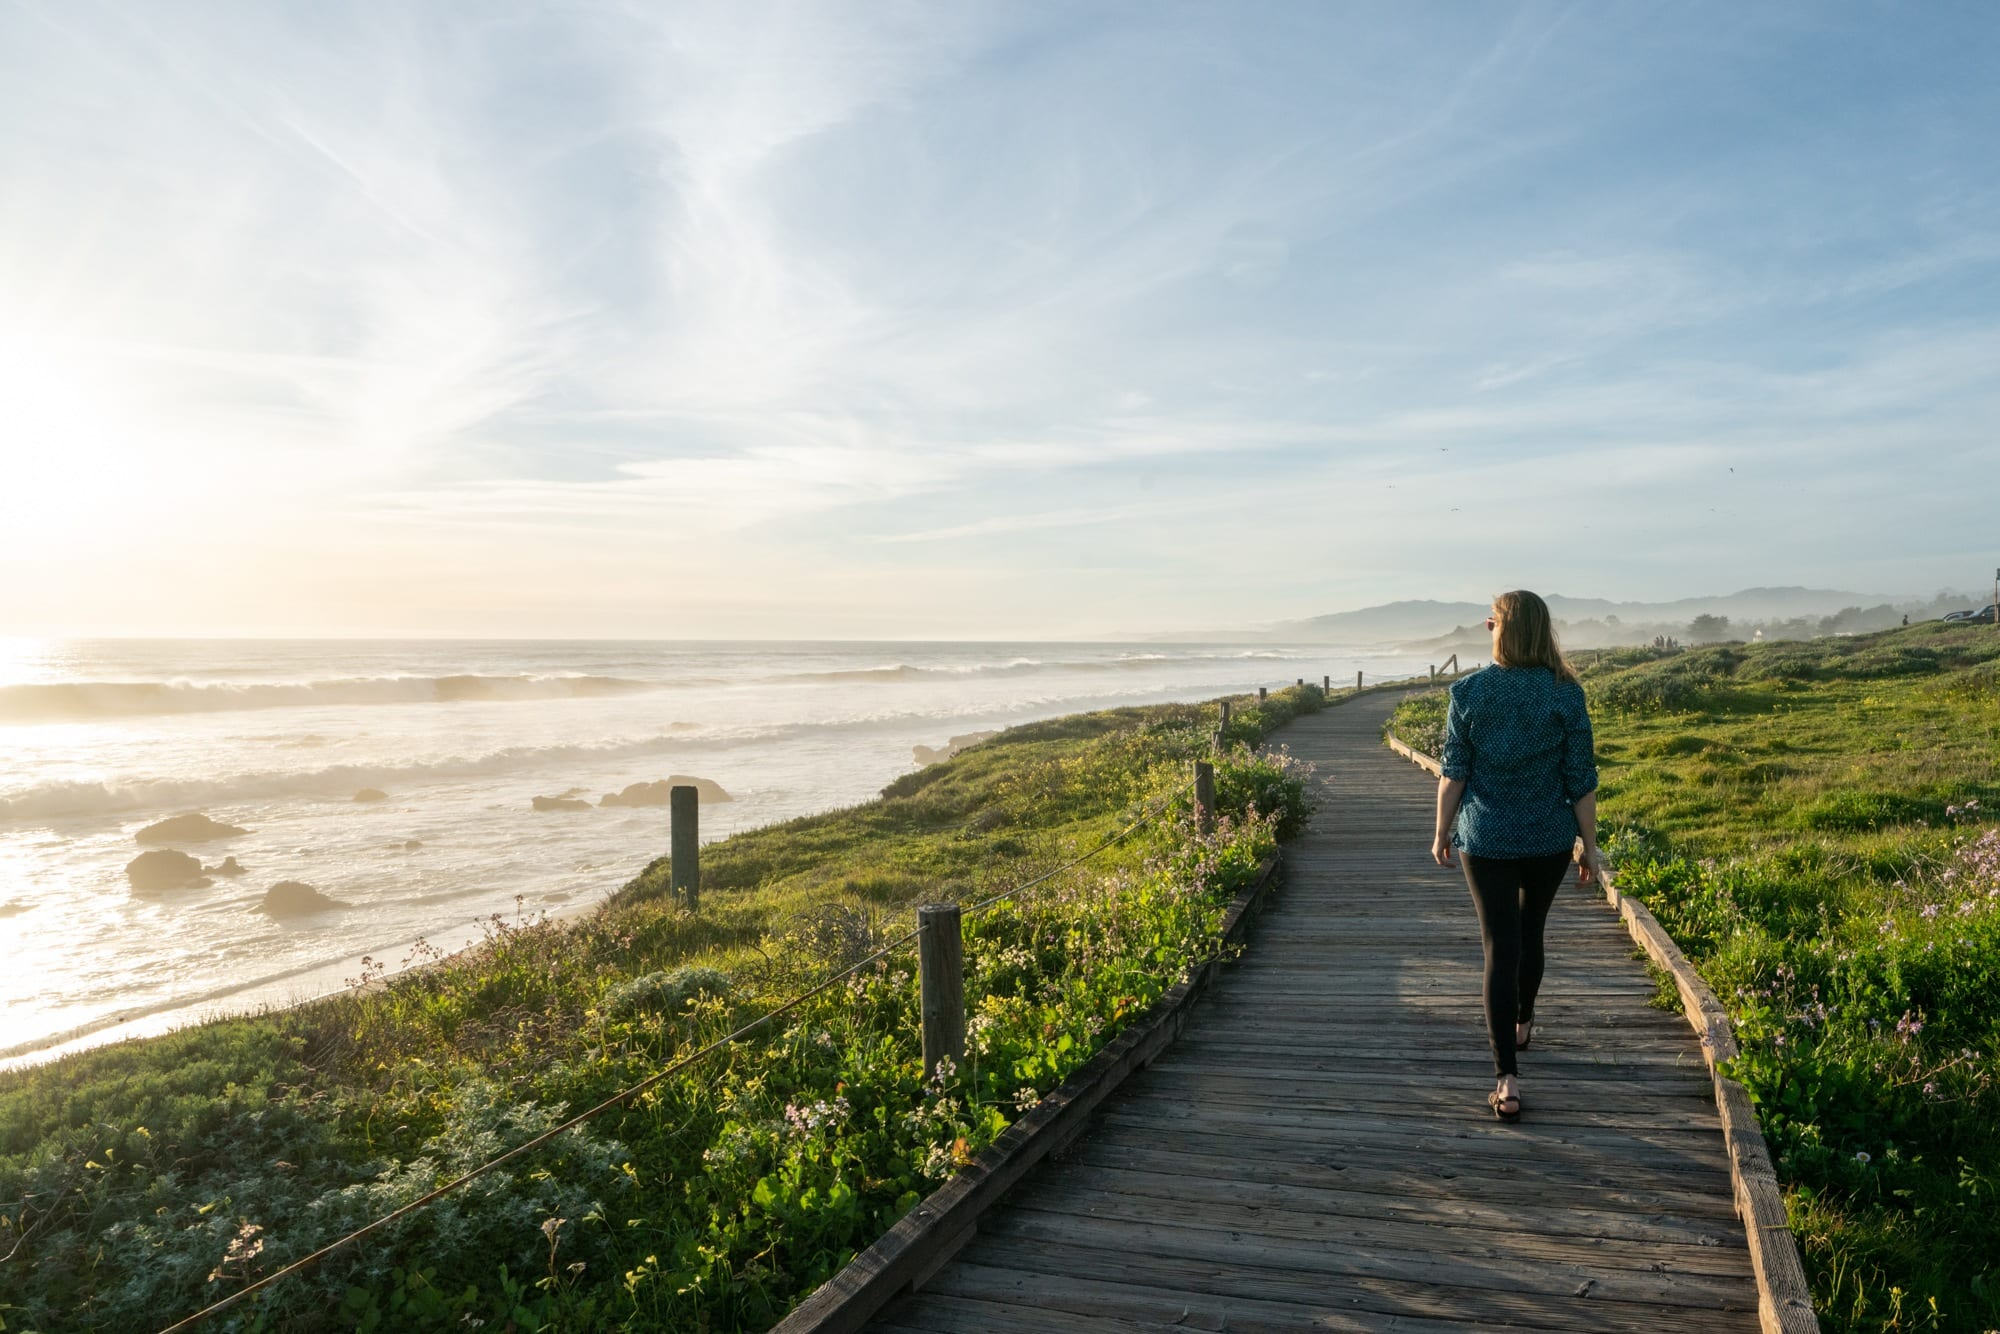 Cambria Moonstone Beach // Plan a 6-day California coast road trip from Ventura to Cambria with this itinerary packed with outdoor adventure, amazing food, and unique places to stay.